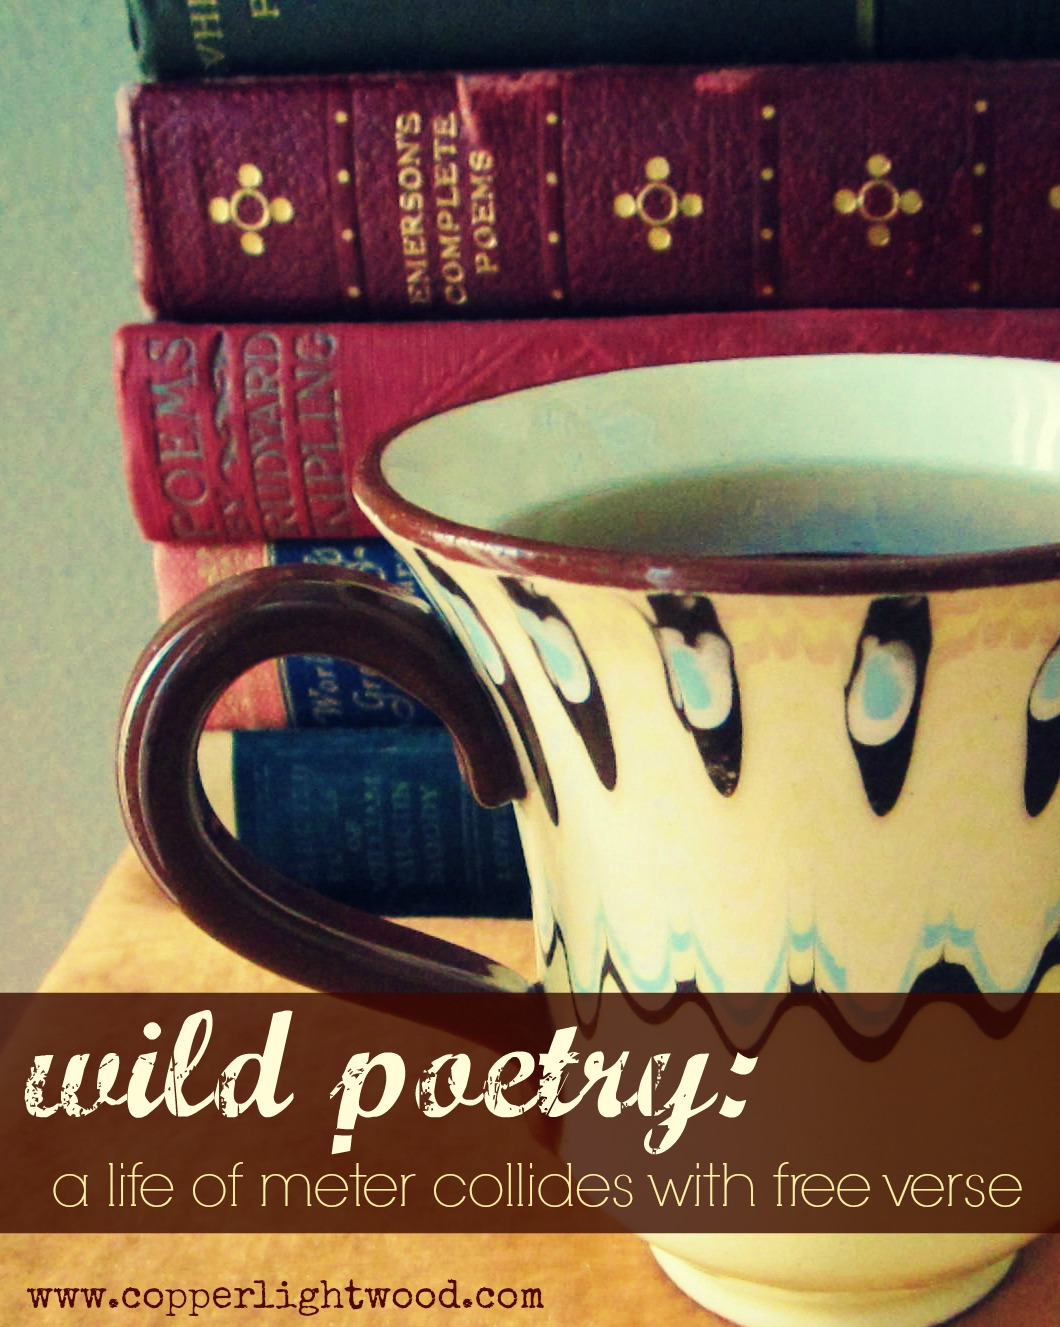 wild poetry: a life of meter collides with free verse